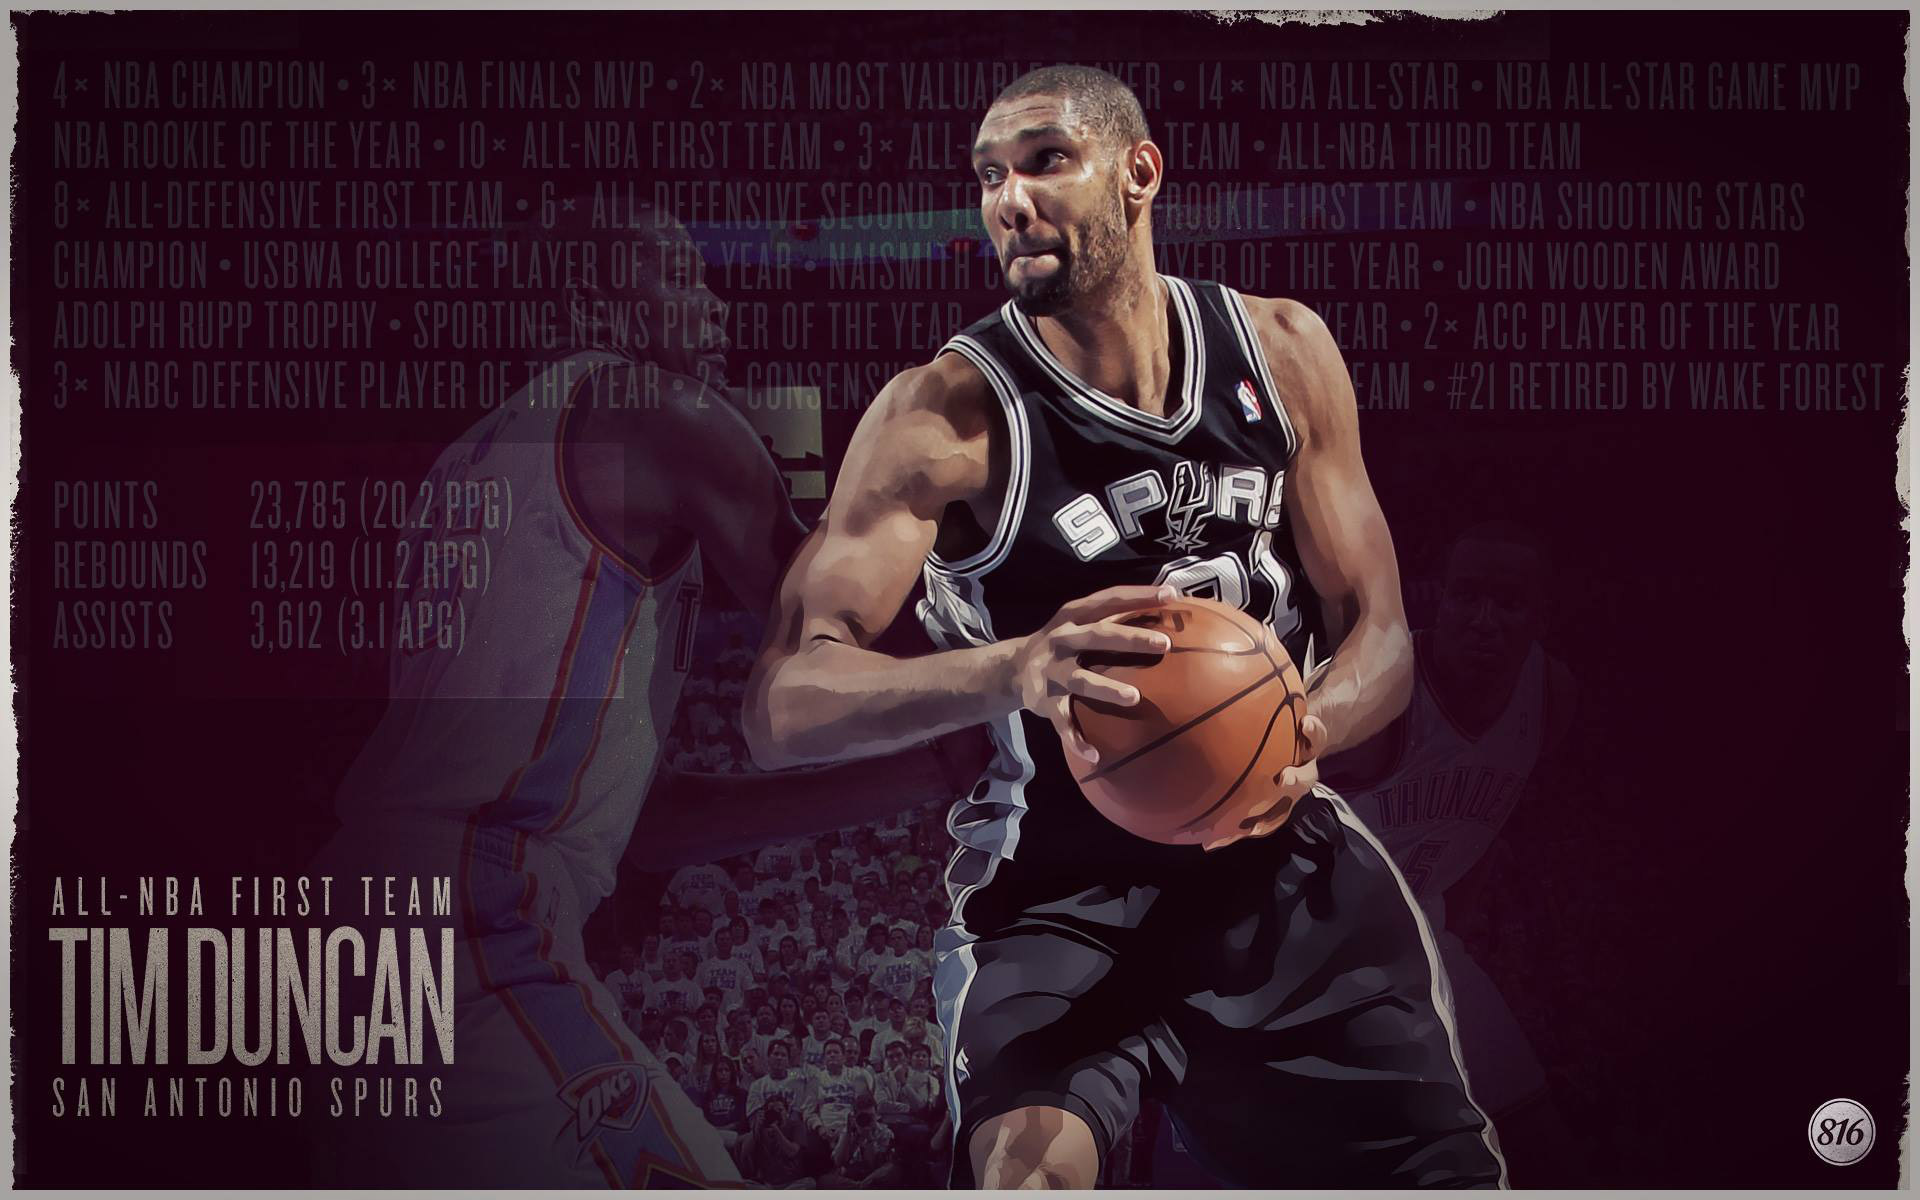 Tim duncan 2013 all nba first team 1920x1200 wallpaper - Tim duncan iphone wallpaper ...